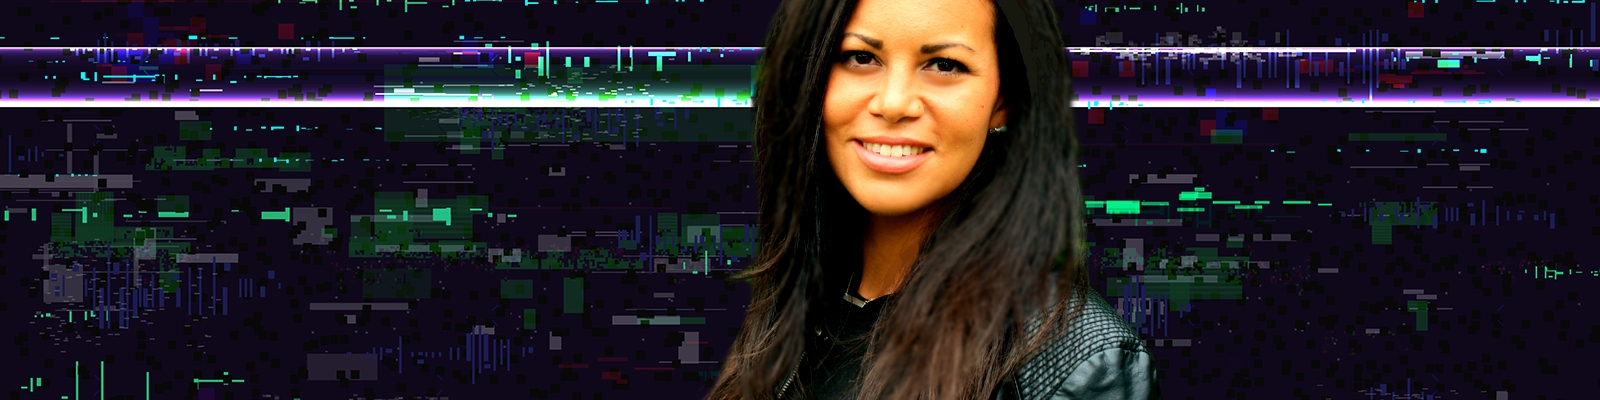 Head Of Leagues Johanna Faries Tells Us Why You Can't Miss Call Of Duty League's Second Season